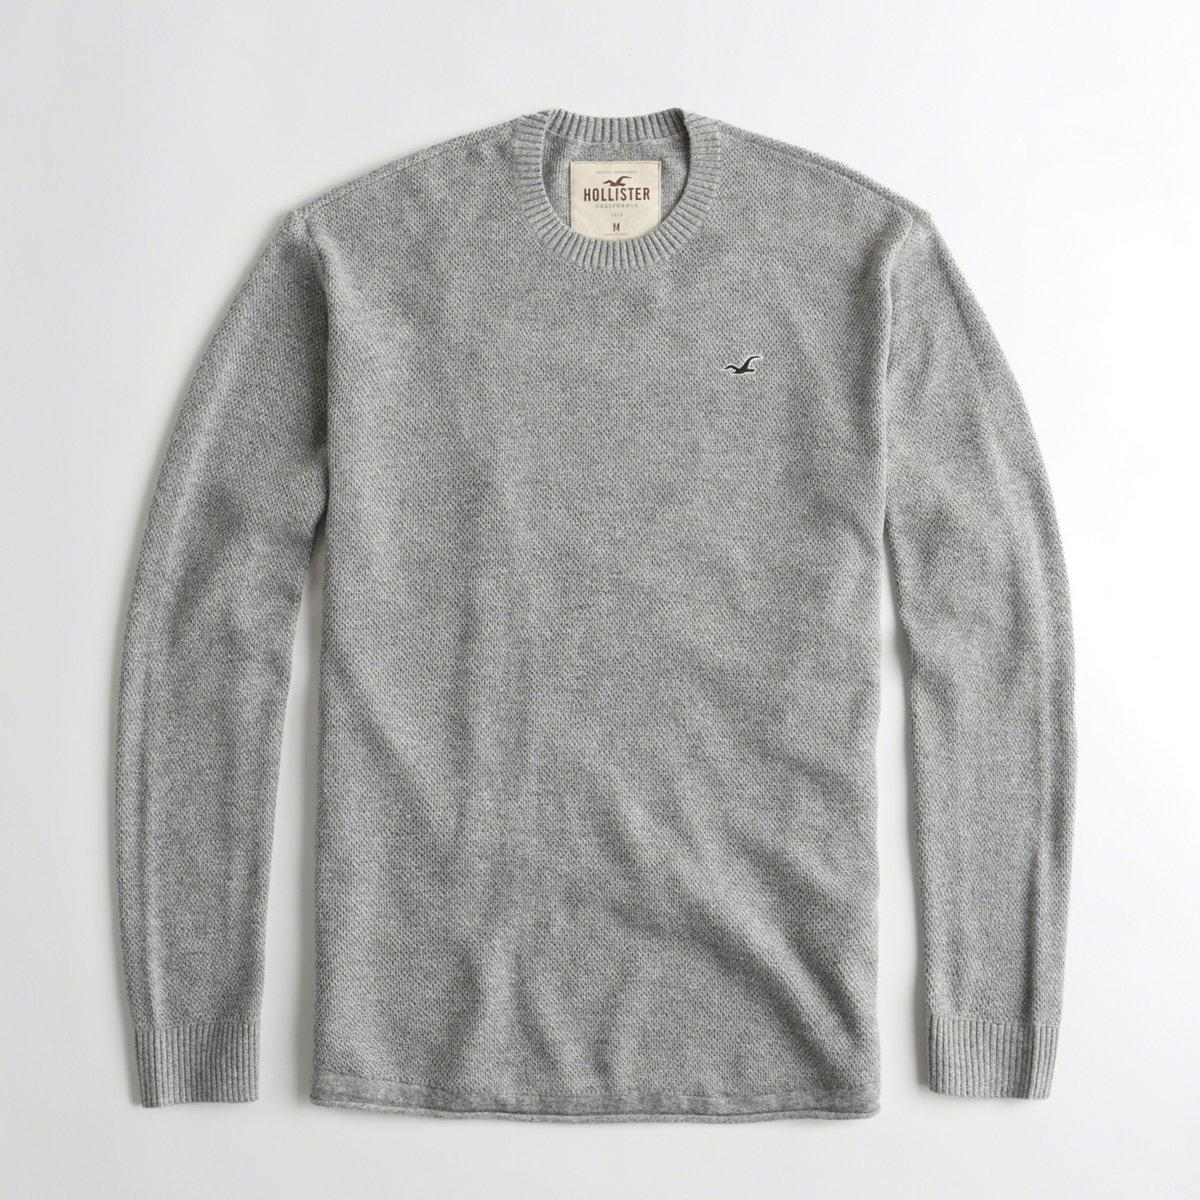 Hollister Oberbekleidung Returns Exchanges Hollister Pullover Hollister Hoodies Hollister Jeans: Hollister Cotton Guys Textured Curved Hem Sweater From